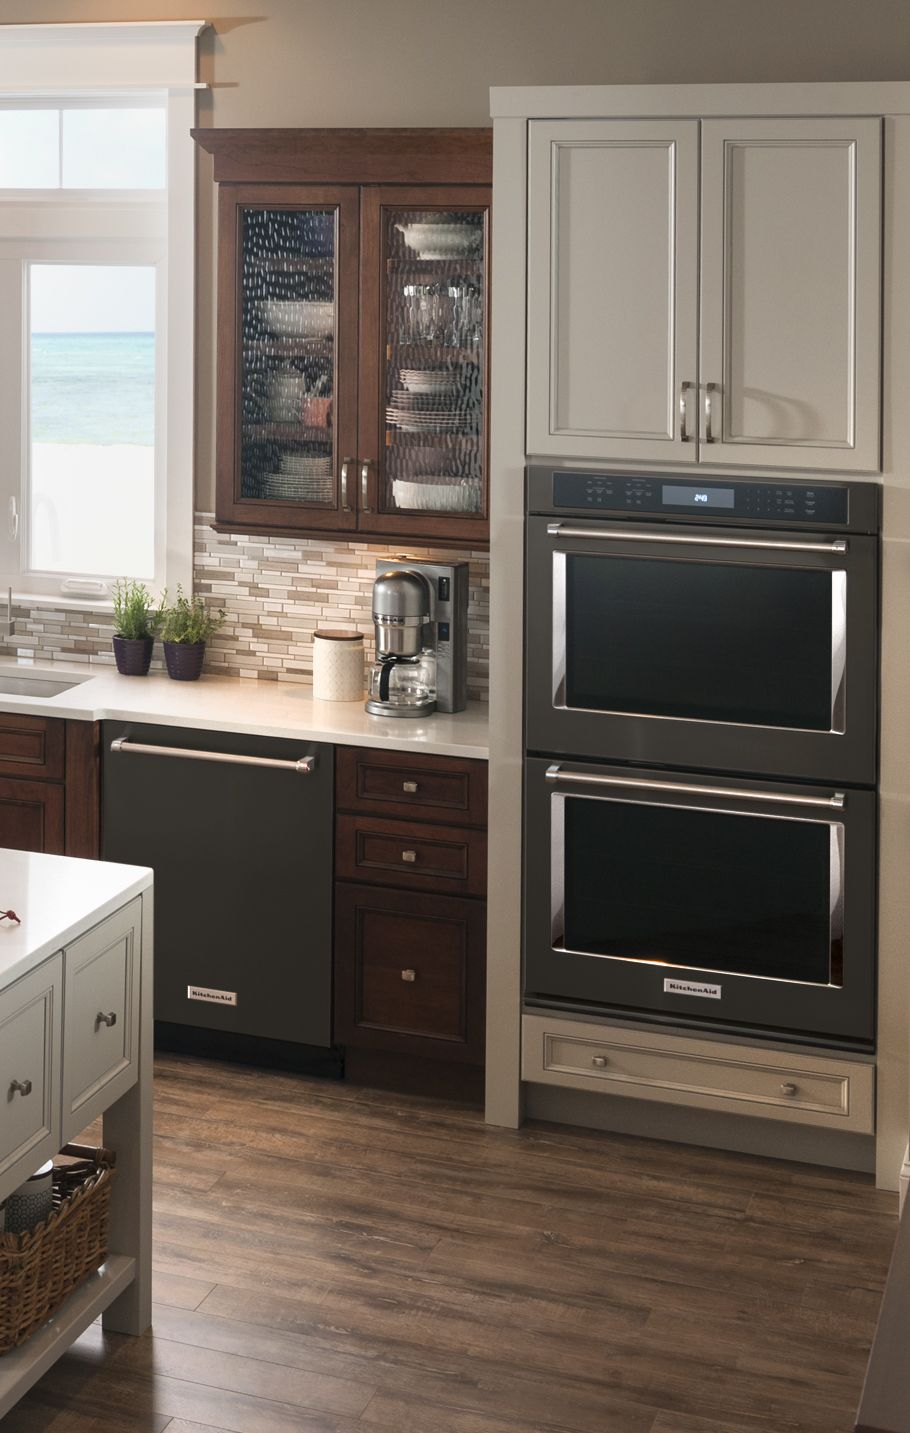 Boldly designed inside and out. Build the kitchen of your